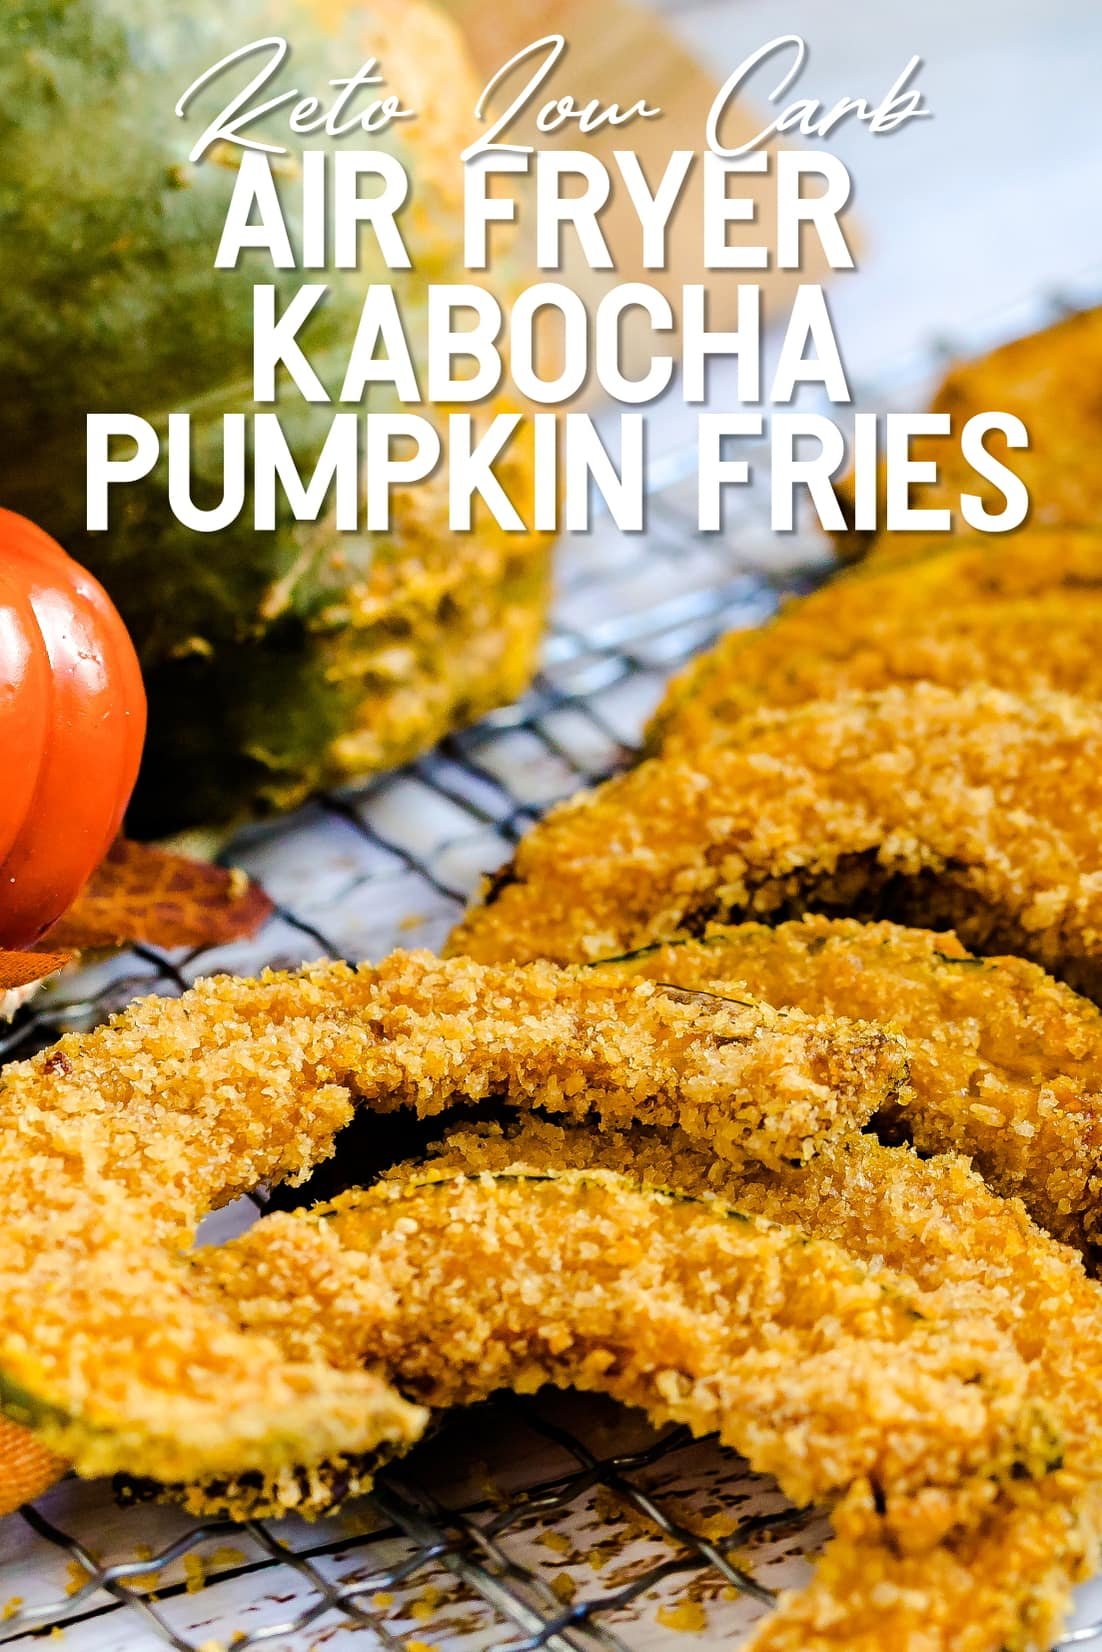 Keto Air Fried Kabocha Pumpkin Fries on a drying rack